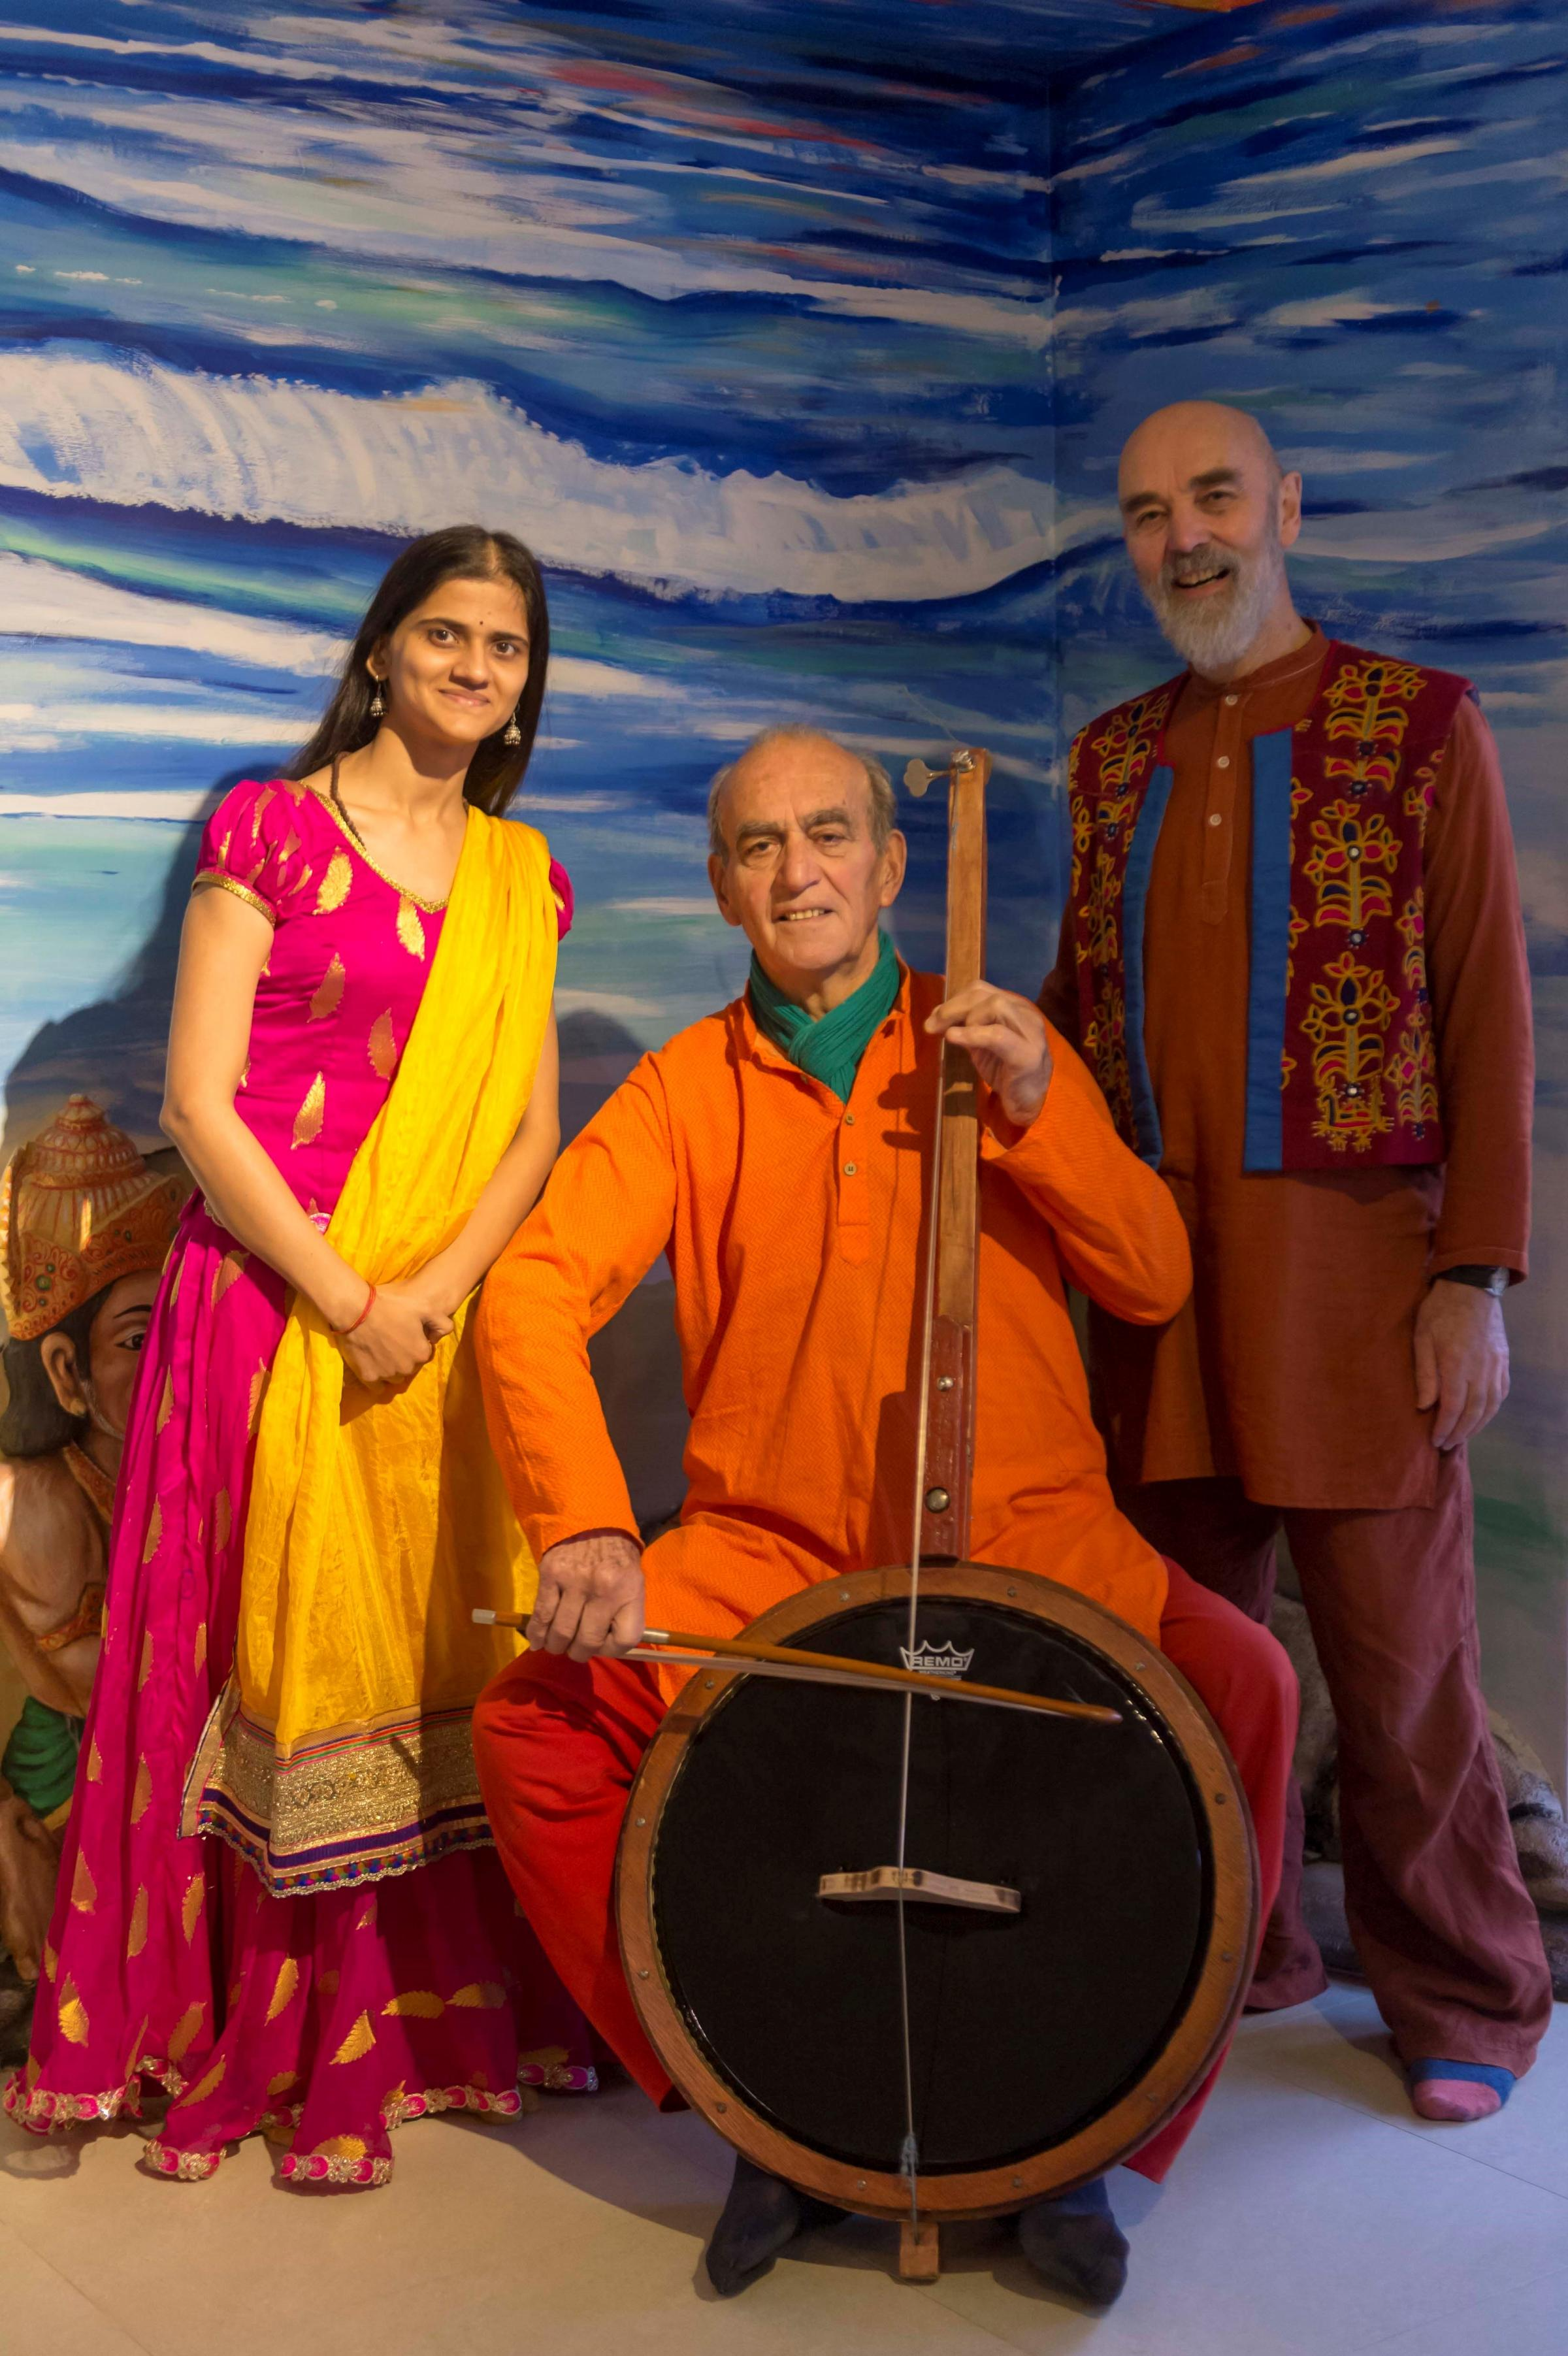 INSPIRING: Awantika Dubey, William Toob y and Gilles Petit